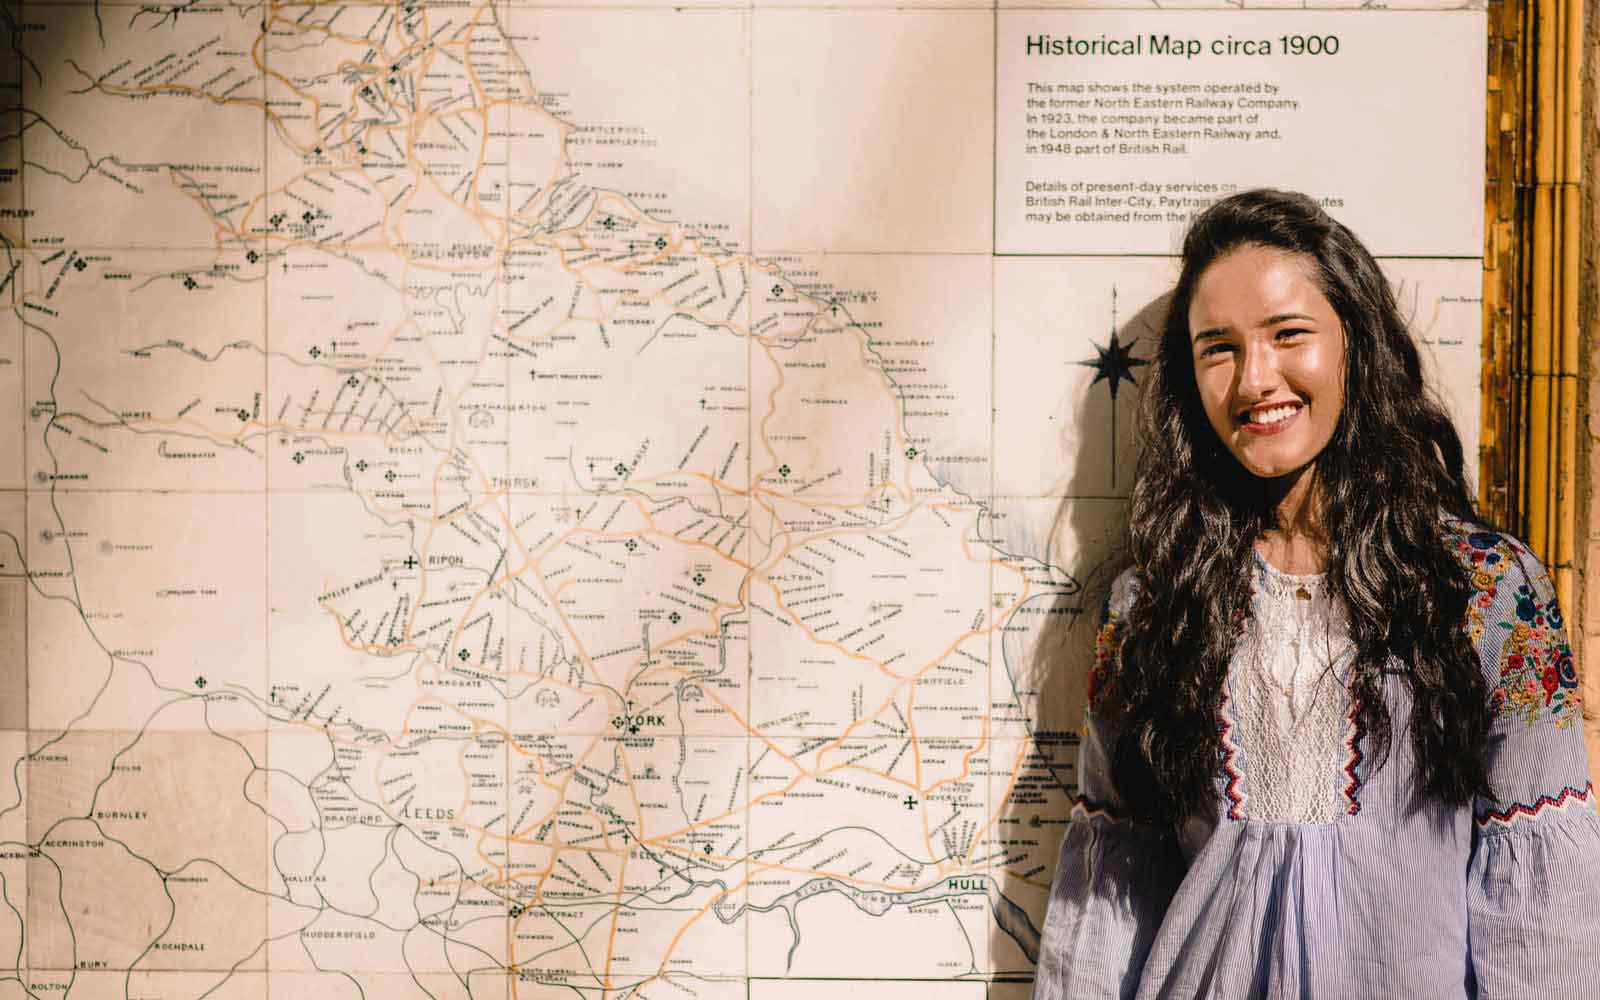 Student stood in front of map of Yorkshire